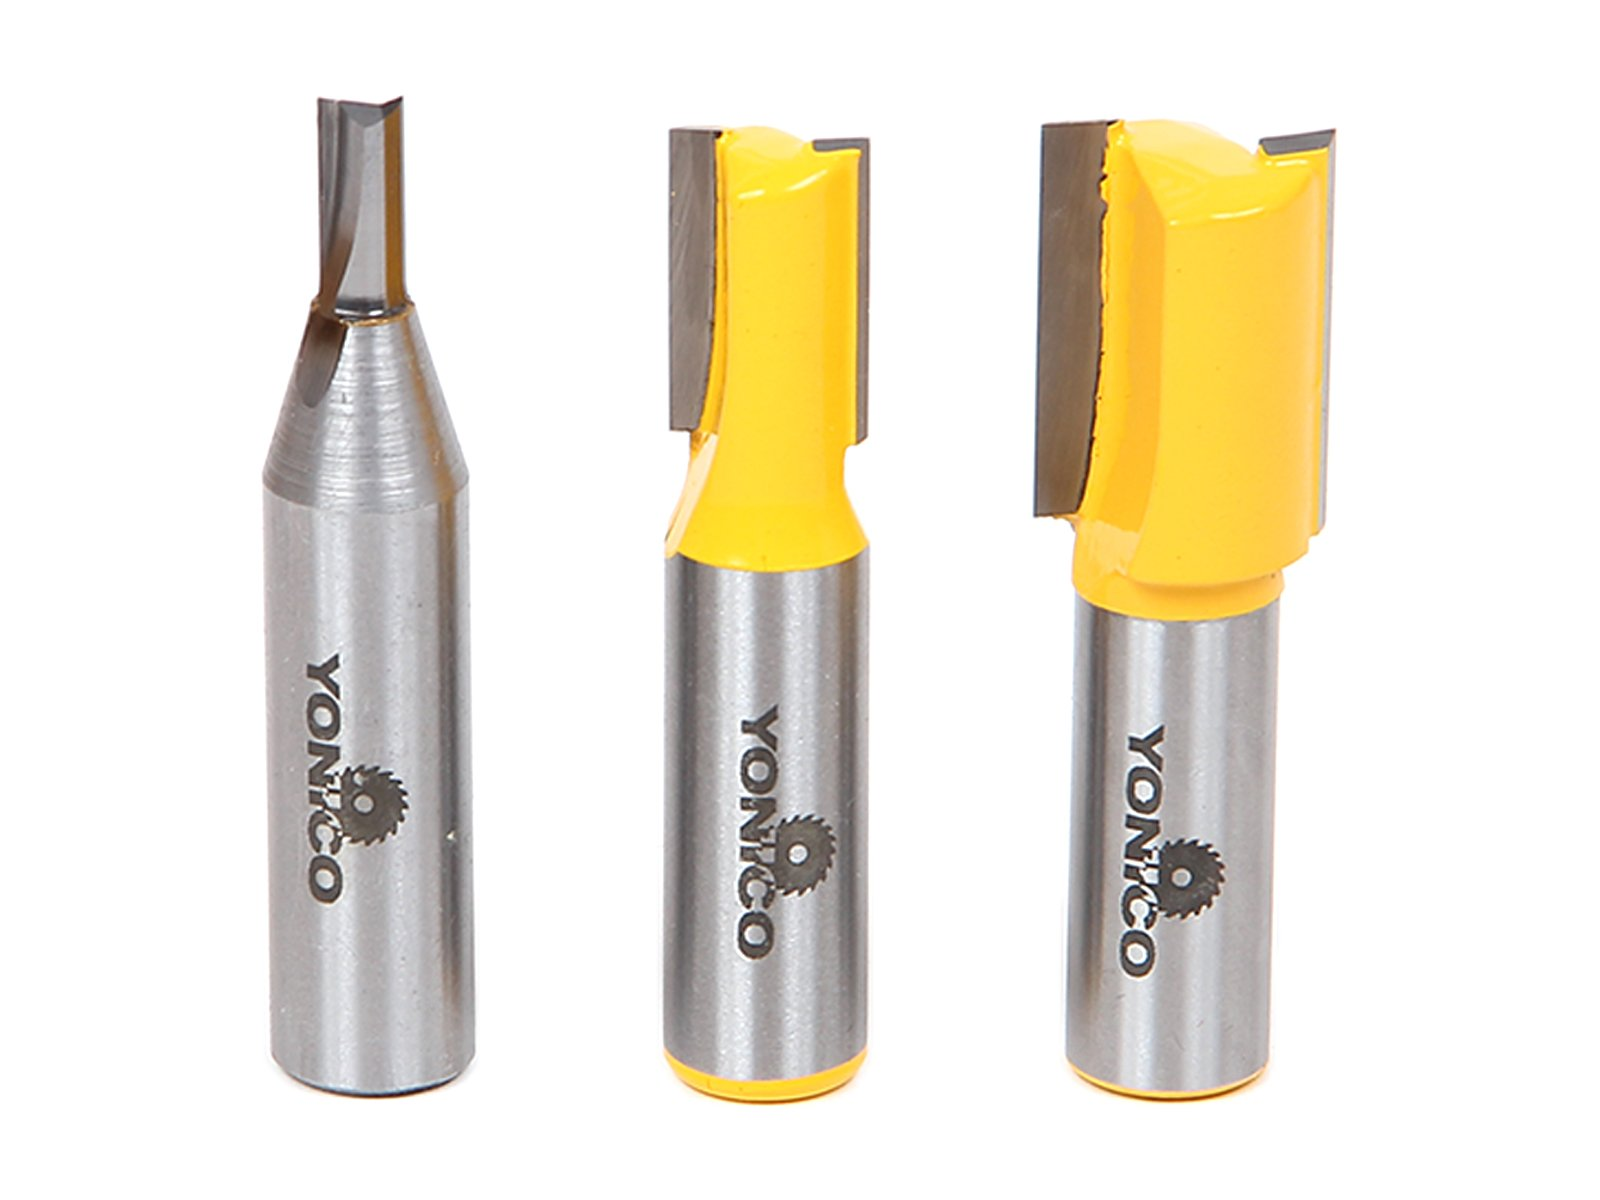 Yonico 14323 3 Plywood Dado Router Bits for 3/4-Inch 1/2-Inch and 1/4-Inch Plywood 1/2-Inch Shank